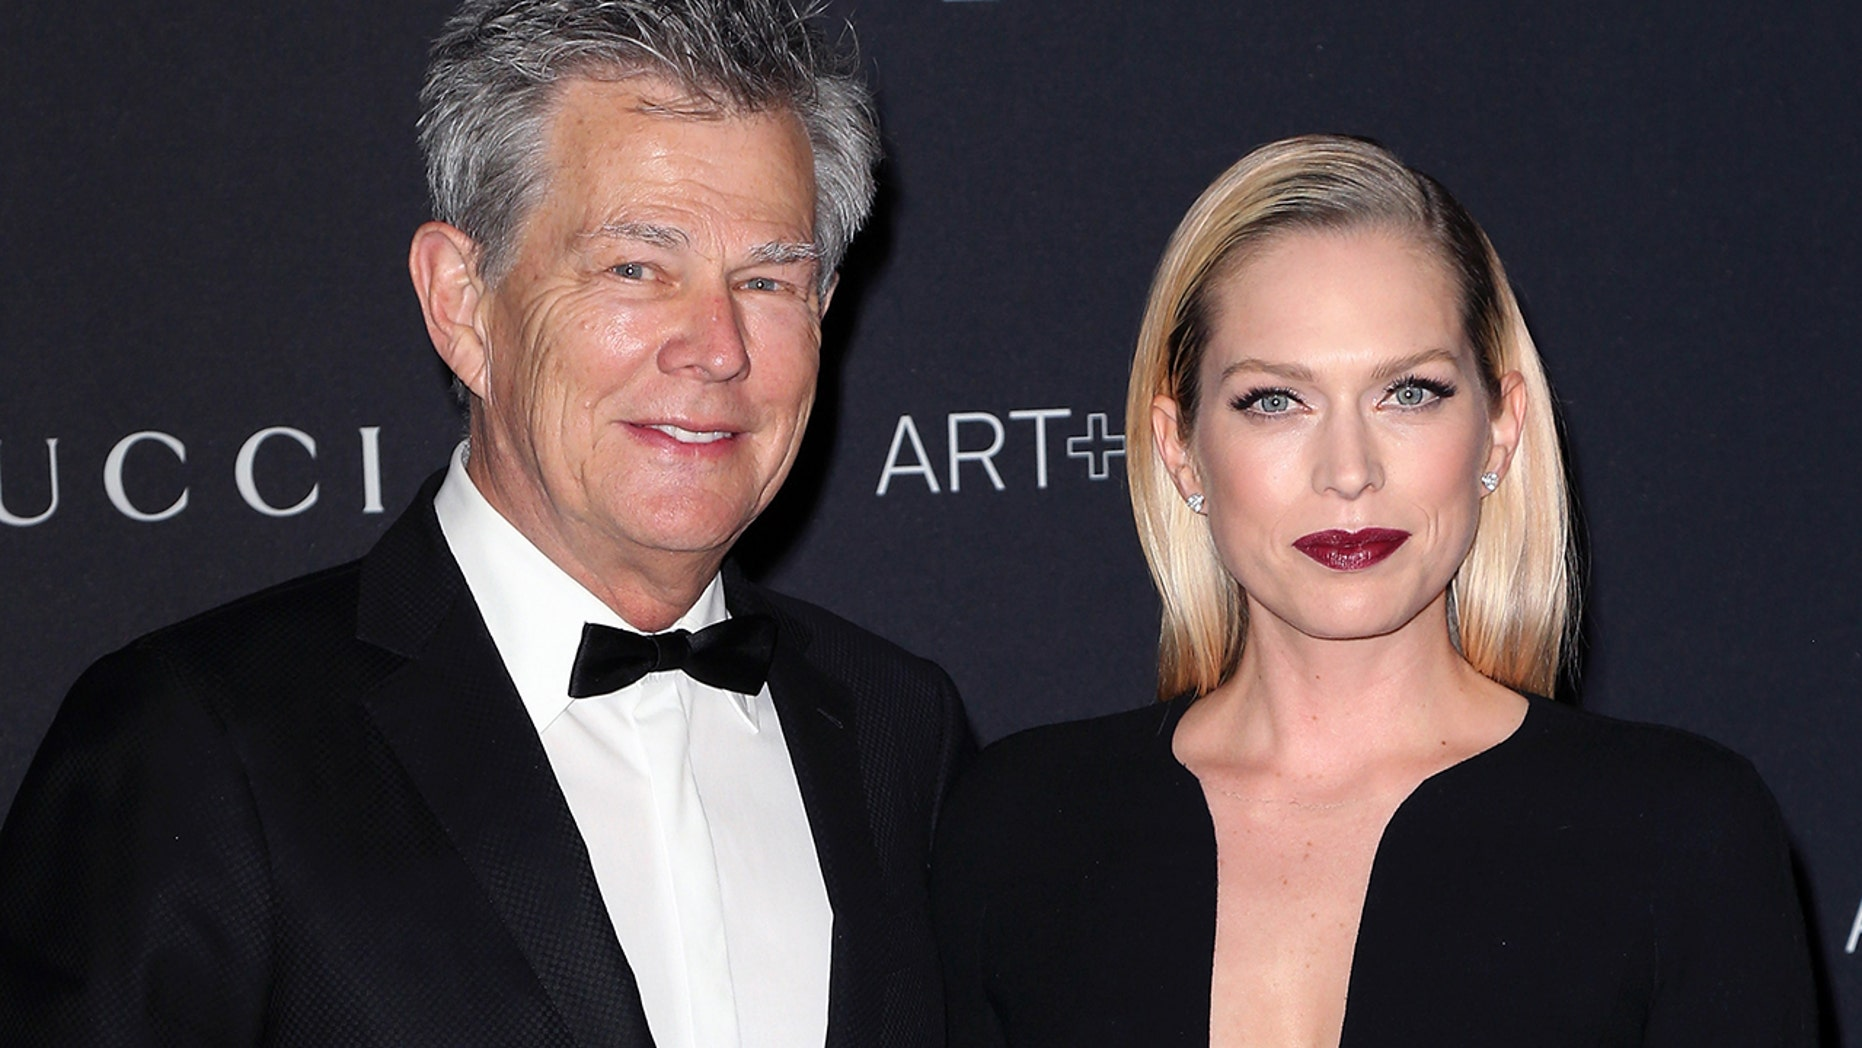 FILE 2015: Composer David Foster (L) and Erin Foster attend the LACMA Art + Film Gala in honor of Alejandro G. Iñárritu and James Turrell and are presented by Gucci in Los Angeles. (Photo by David Livingston / Getty Images)